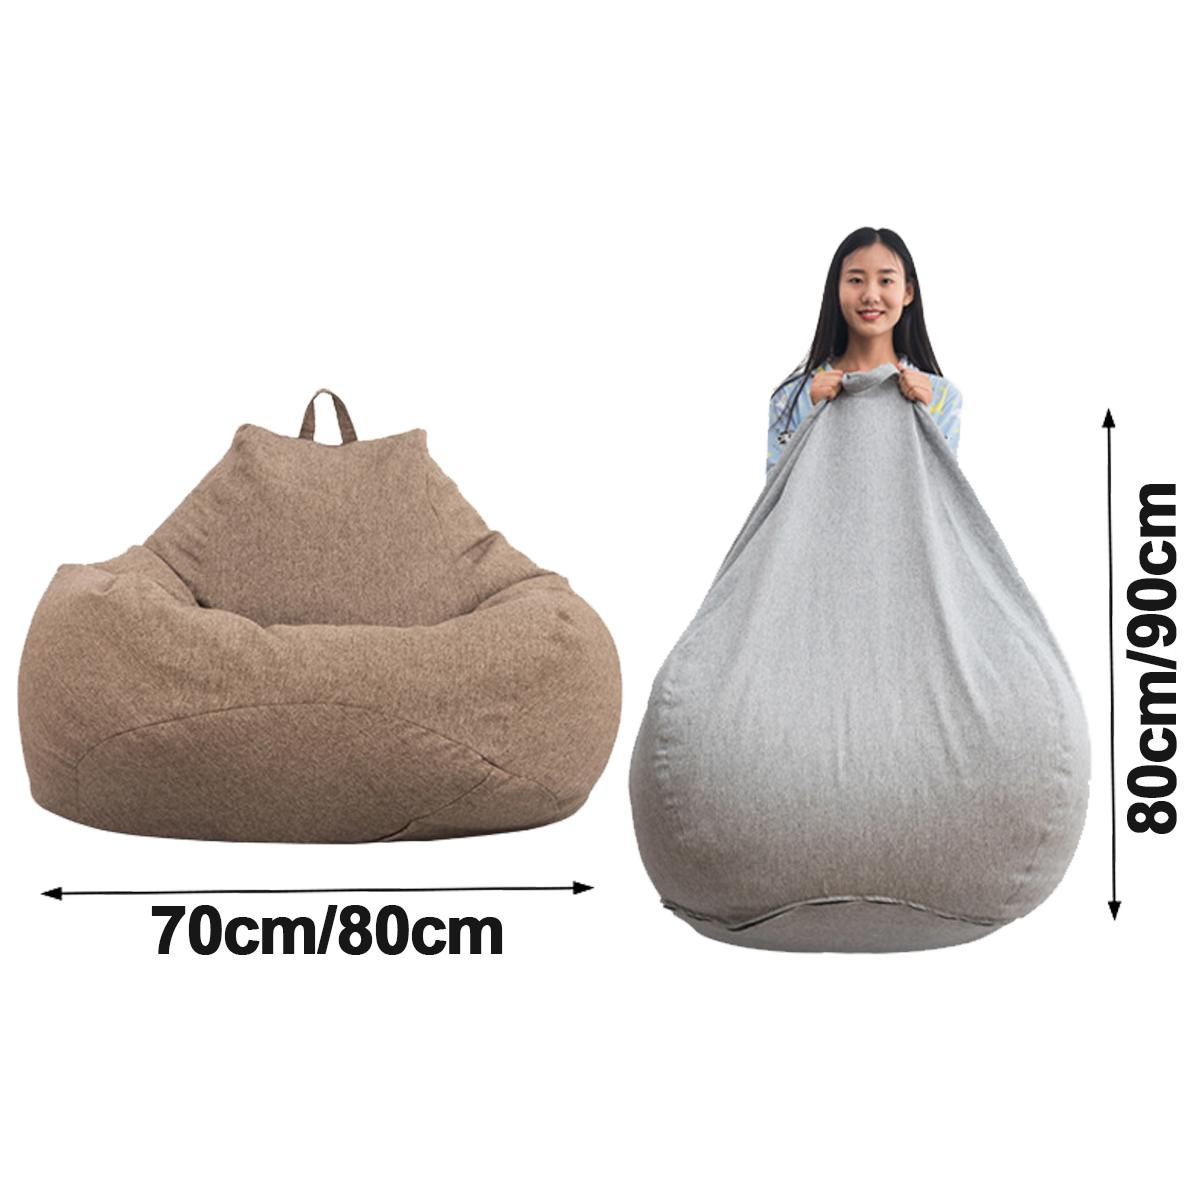 Inner Lining Lazy BeanBag Sofas Waterproof Stuffed Animal Storage Toy Bean Bag Without Cover Chair Beanbag Sofas Lining Only